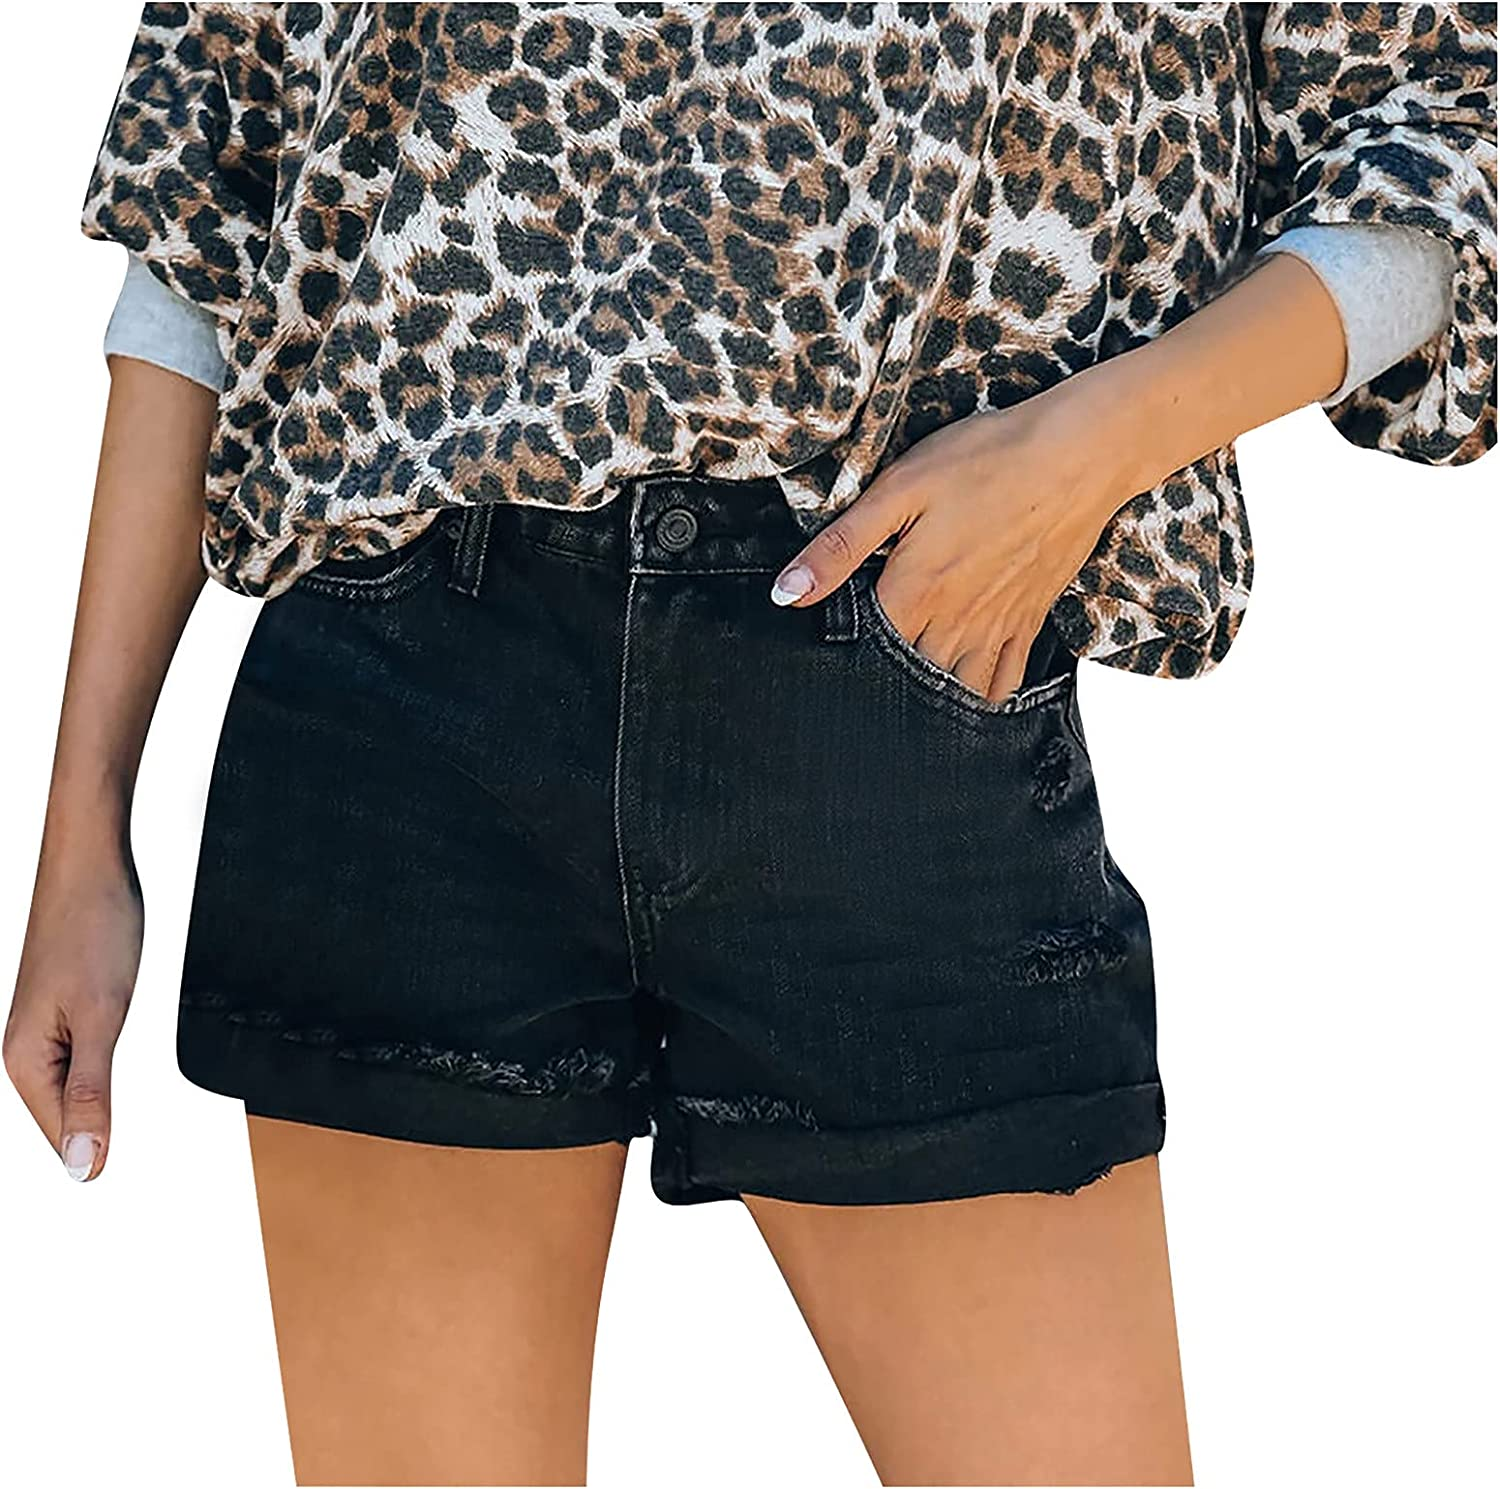 Fankle Denim Shorts for Women Distressed Ripped Shorts Jean Stretchy Frayed Raw Hem Hot Short Jeans with Pockets